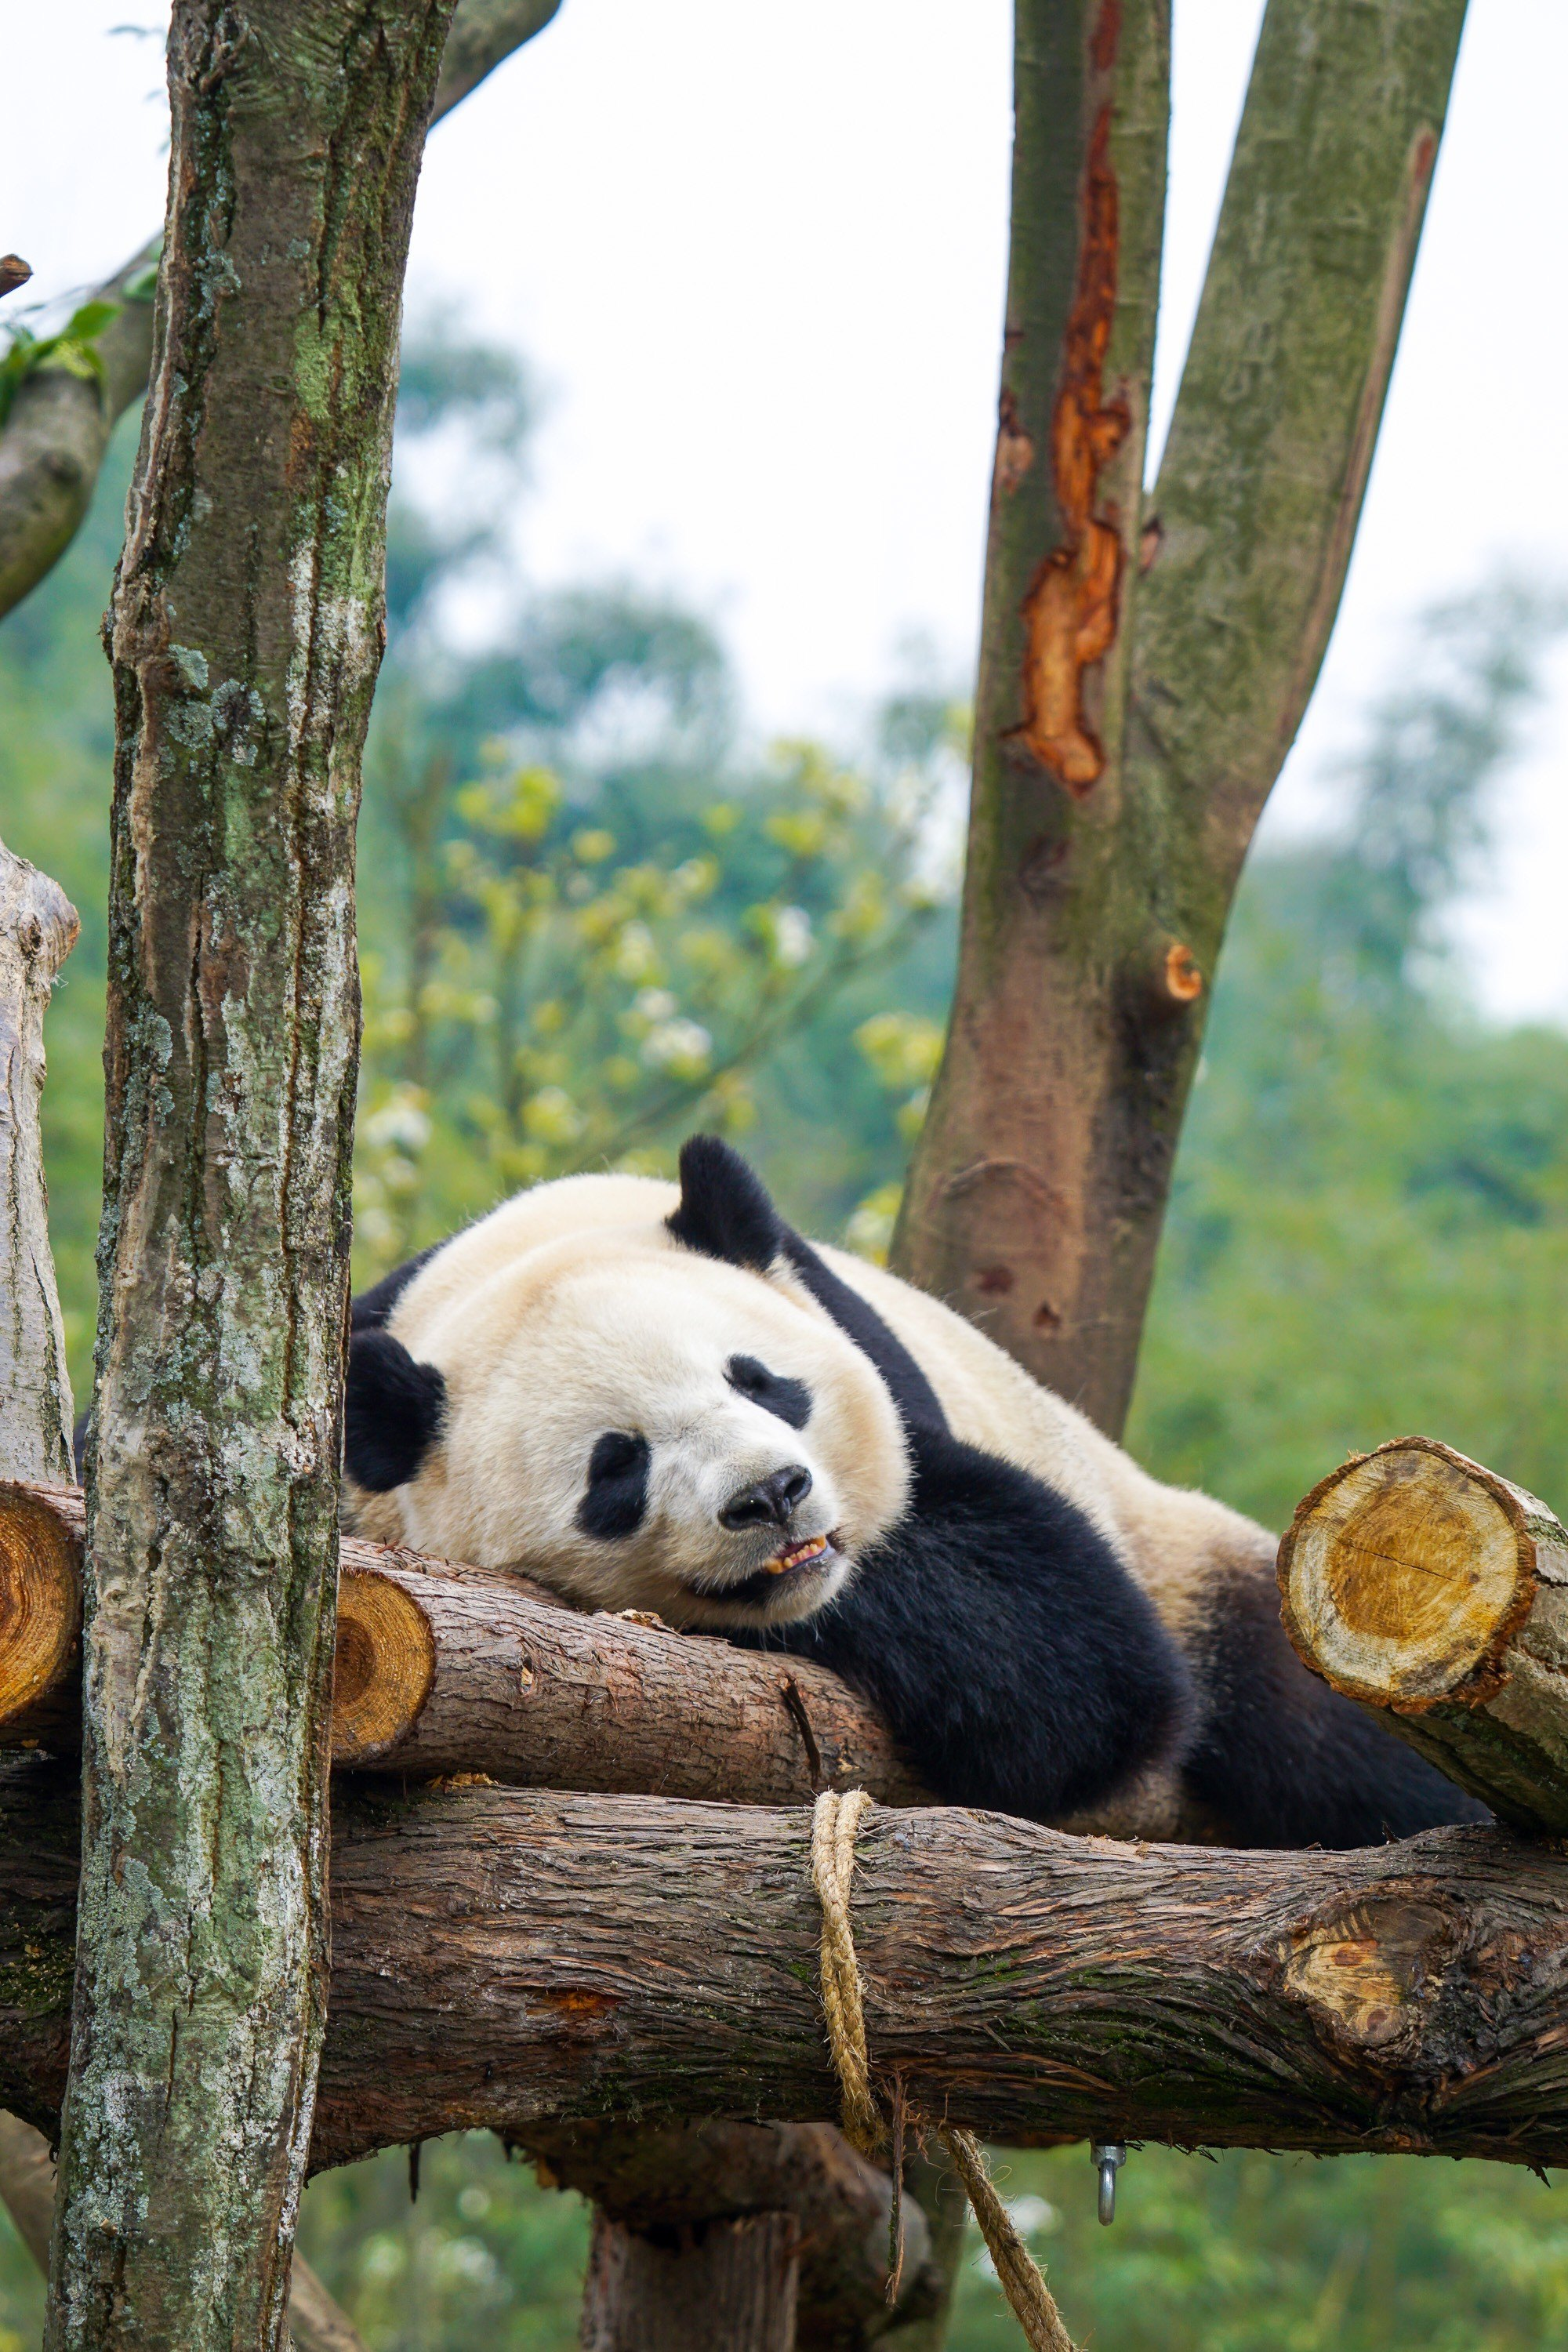 Bao Bao resting at Dujiangyan Panda Base after being transferred from Washington DC Zoo.